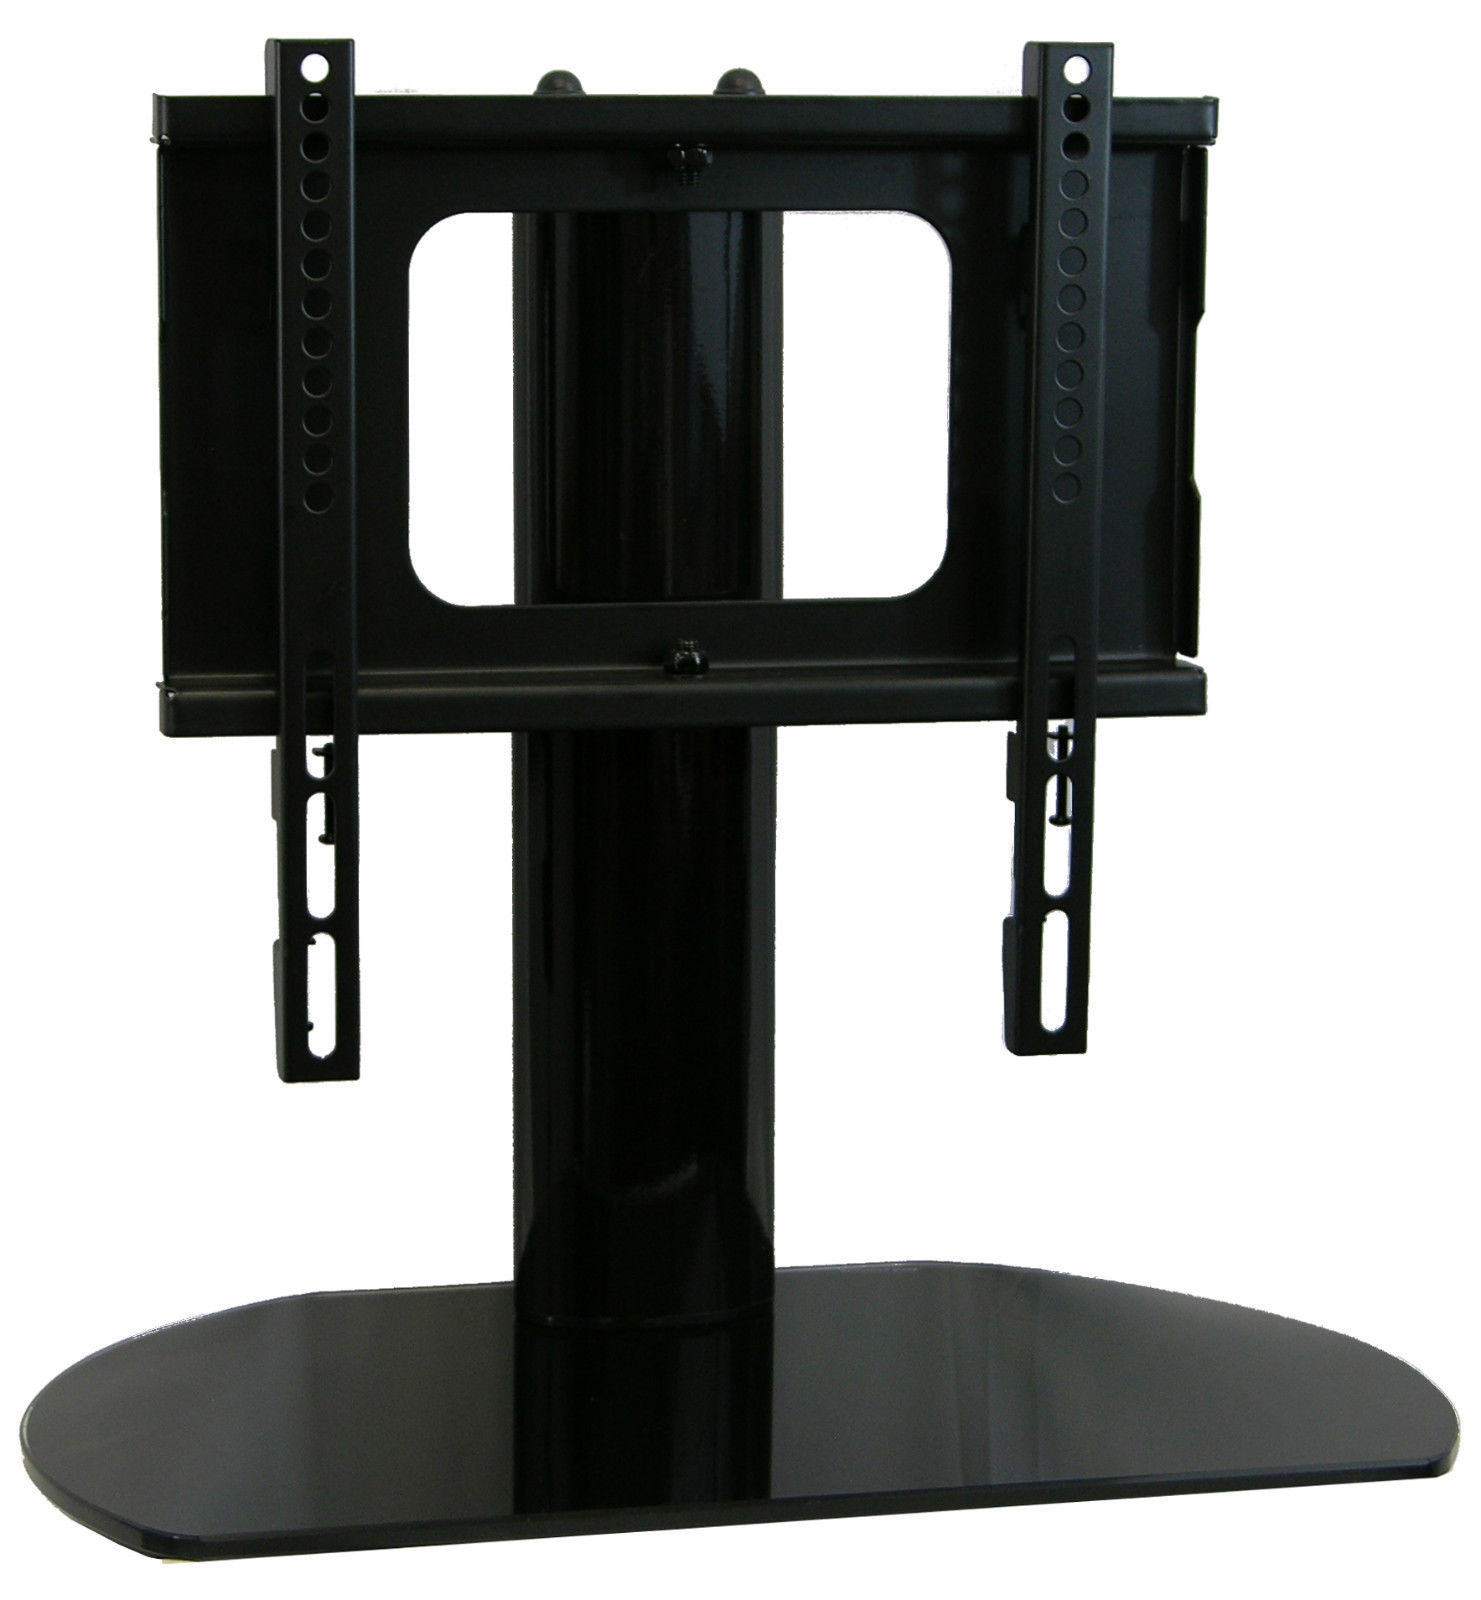 New Universal Replacement Swivel TV Stand/Base for Westinghouse VR-3225